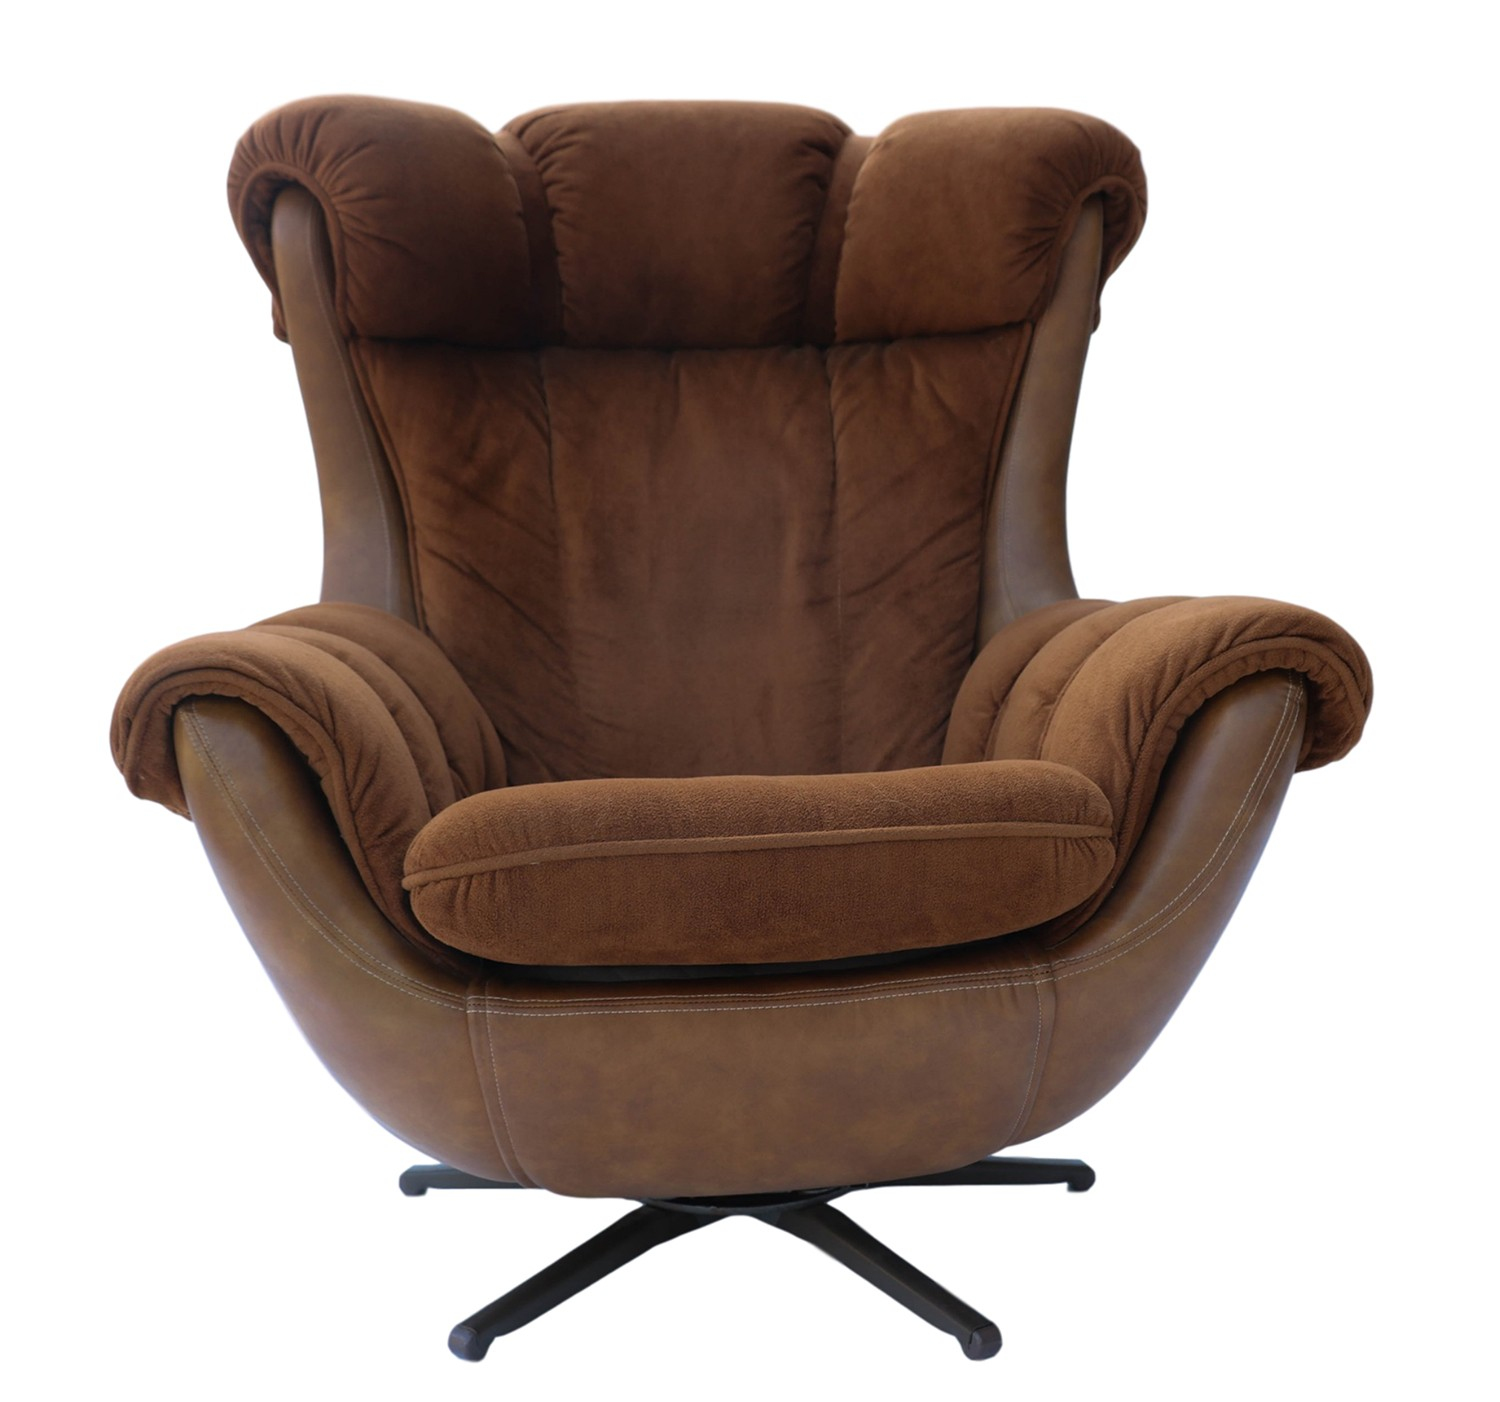 Mid Century Modern Furniture Chair: Mid Century Modern Lounge Arm Chair